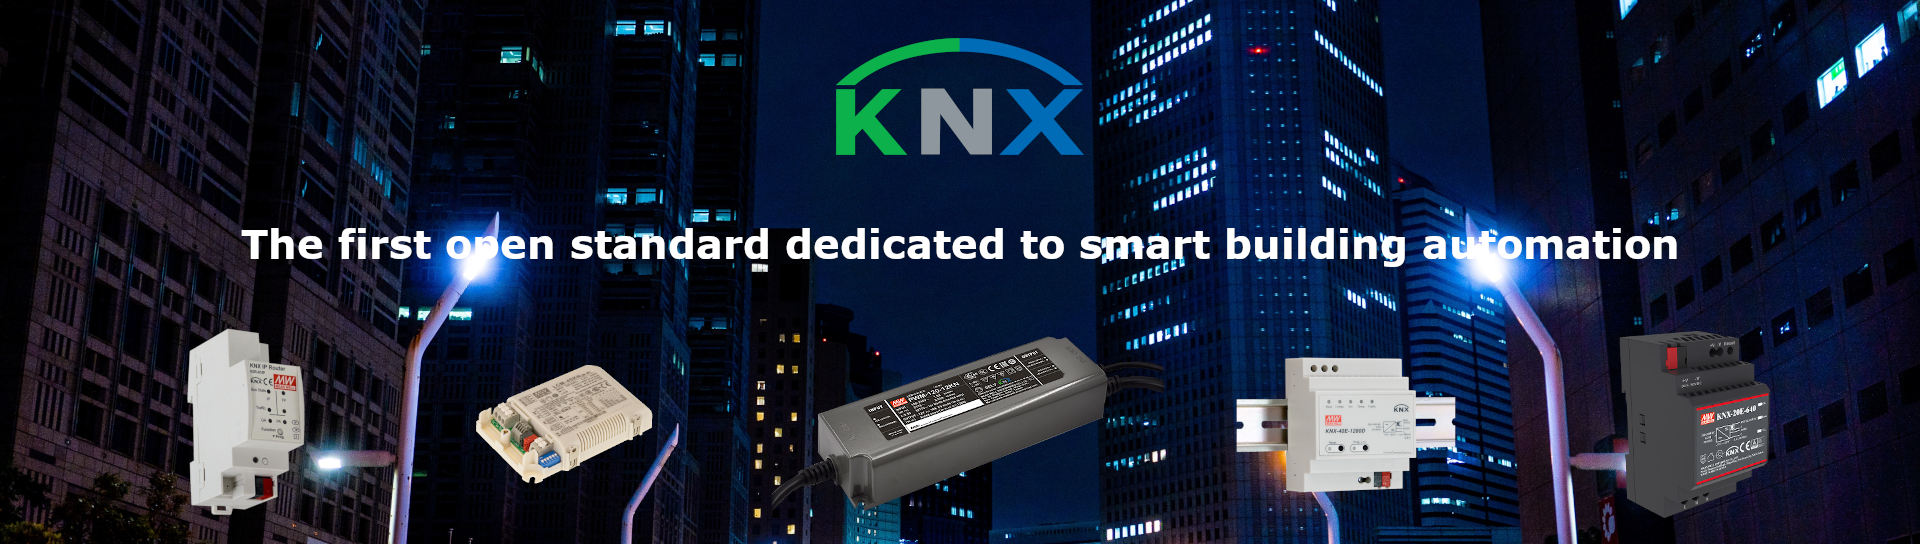 knx: the first open standard dedicated to smart building automation